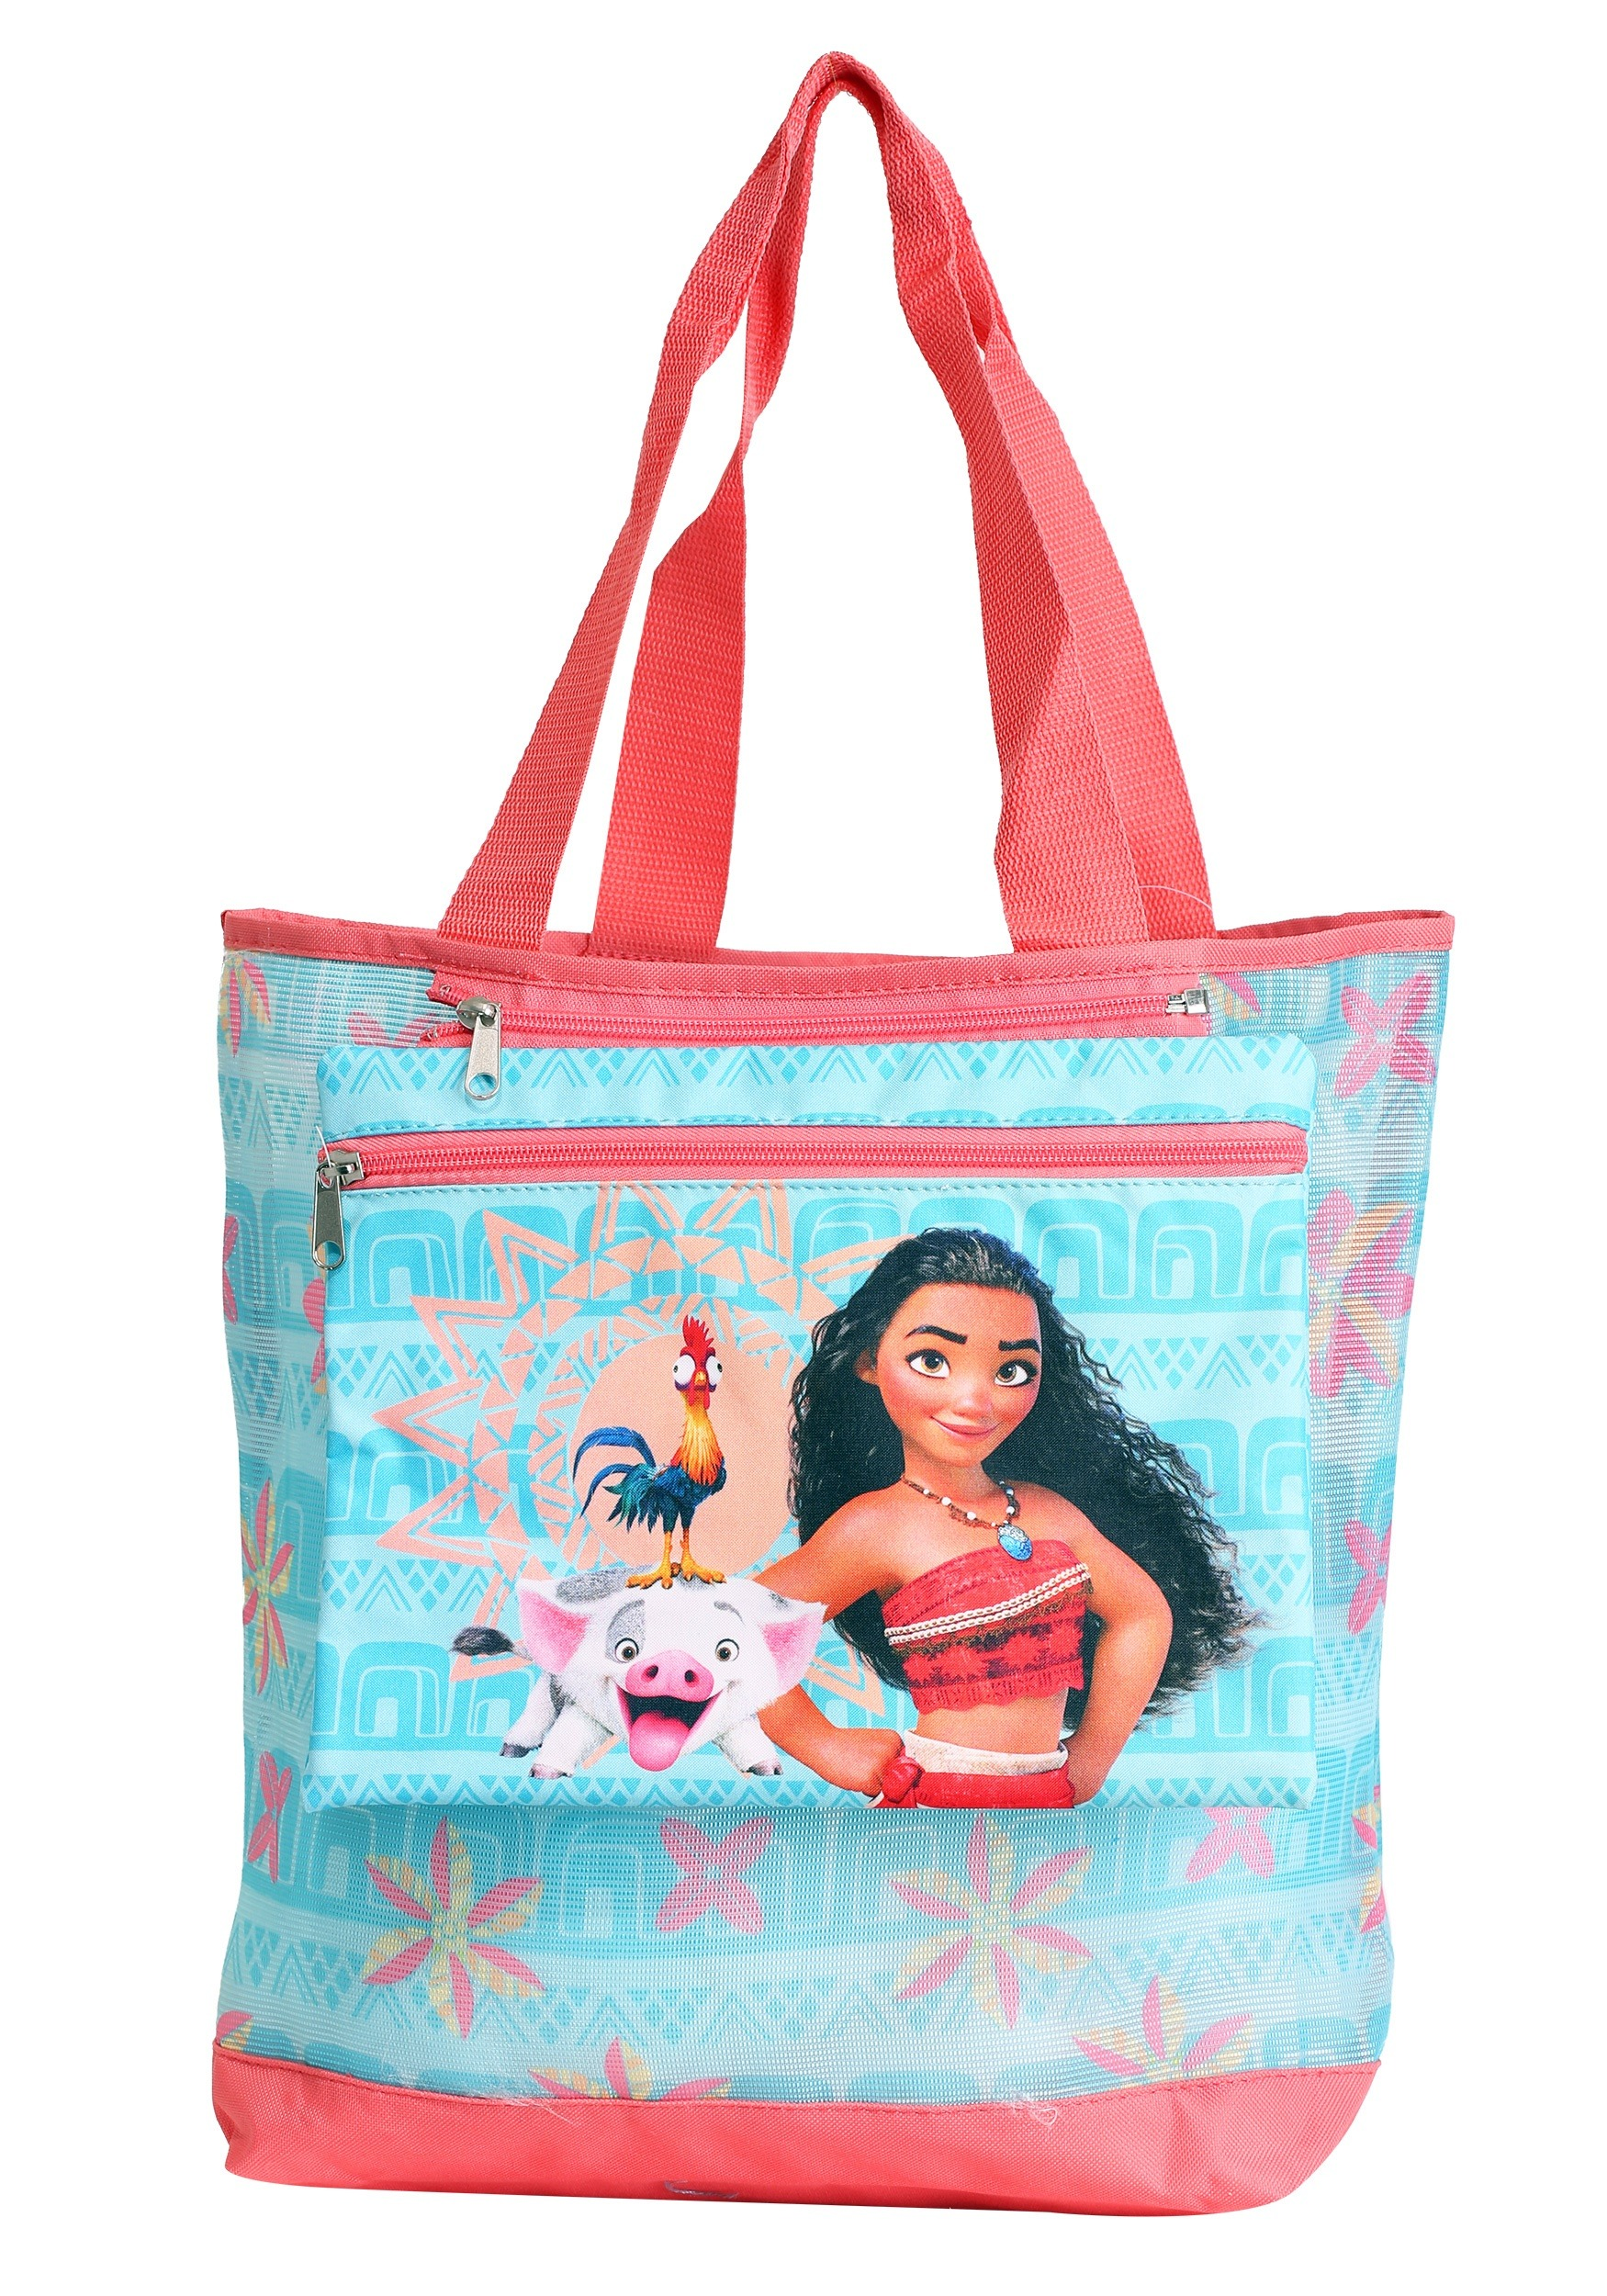 Moana_Kids_Tote_Bag